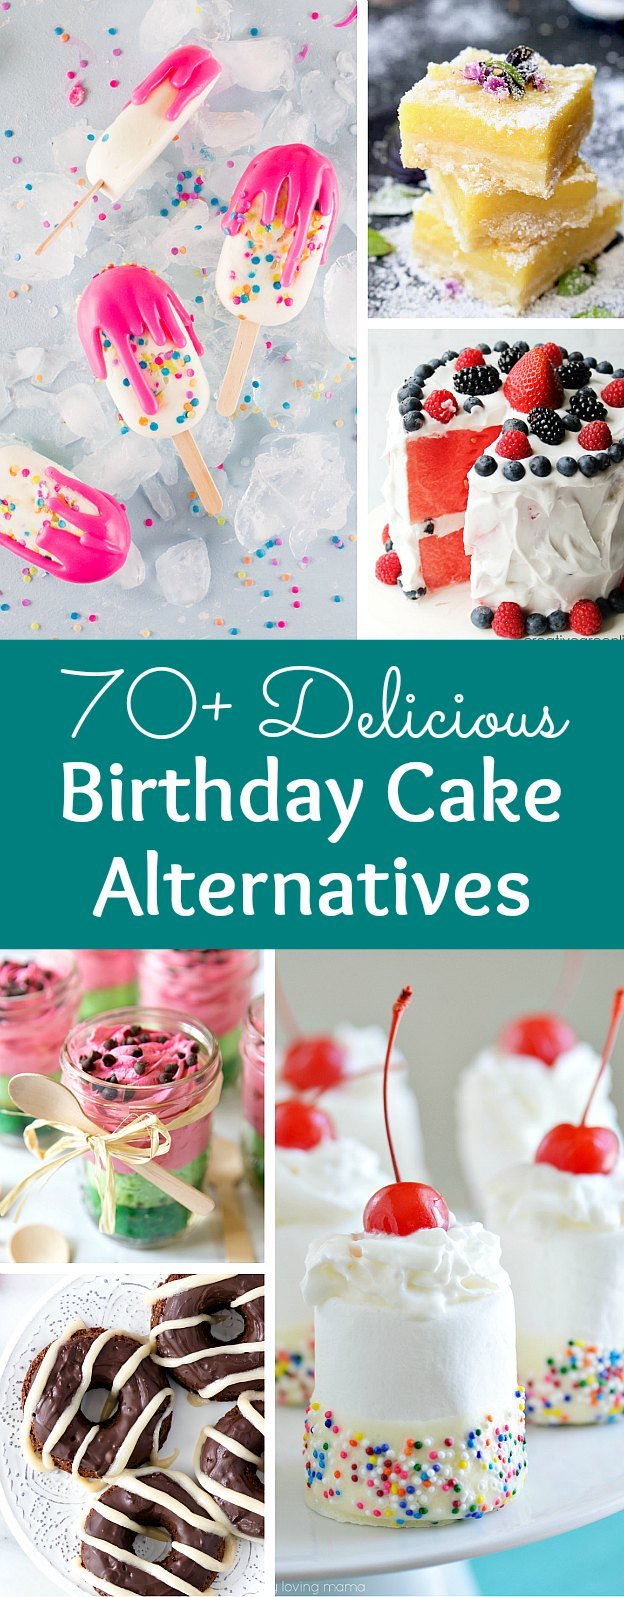 Phenomenal 70 Creative Birthday Cake Alternatives Hello Little Home Personalised Birthday Cards Paralily Jamesorg